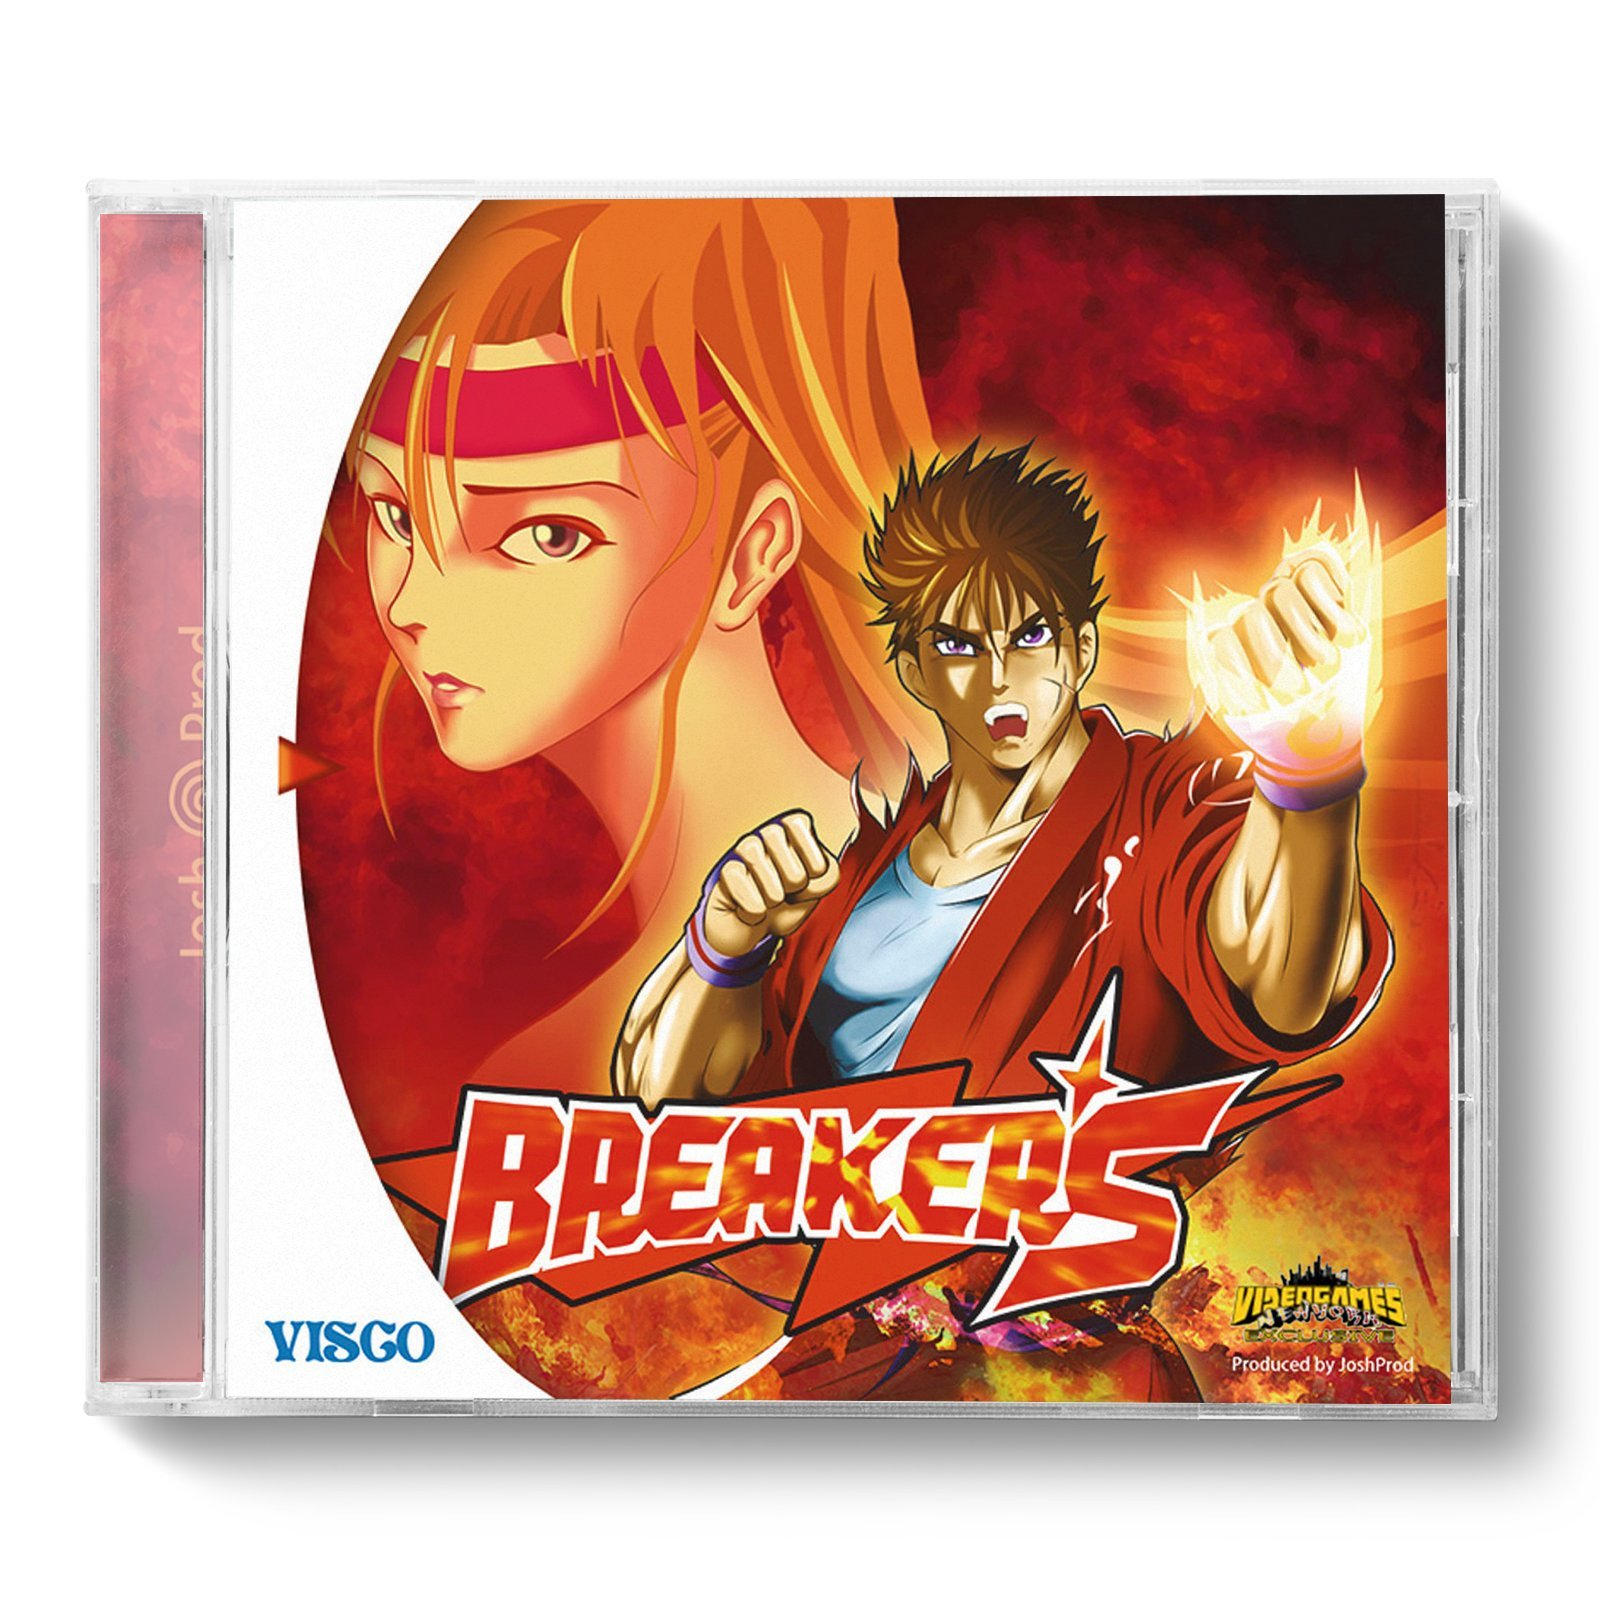 BREAKERS [USA/JP VERSION]